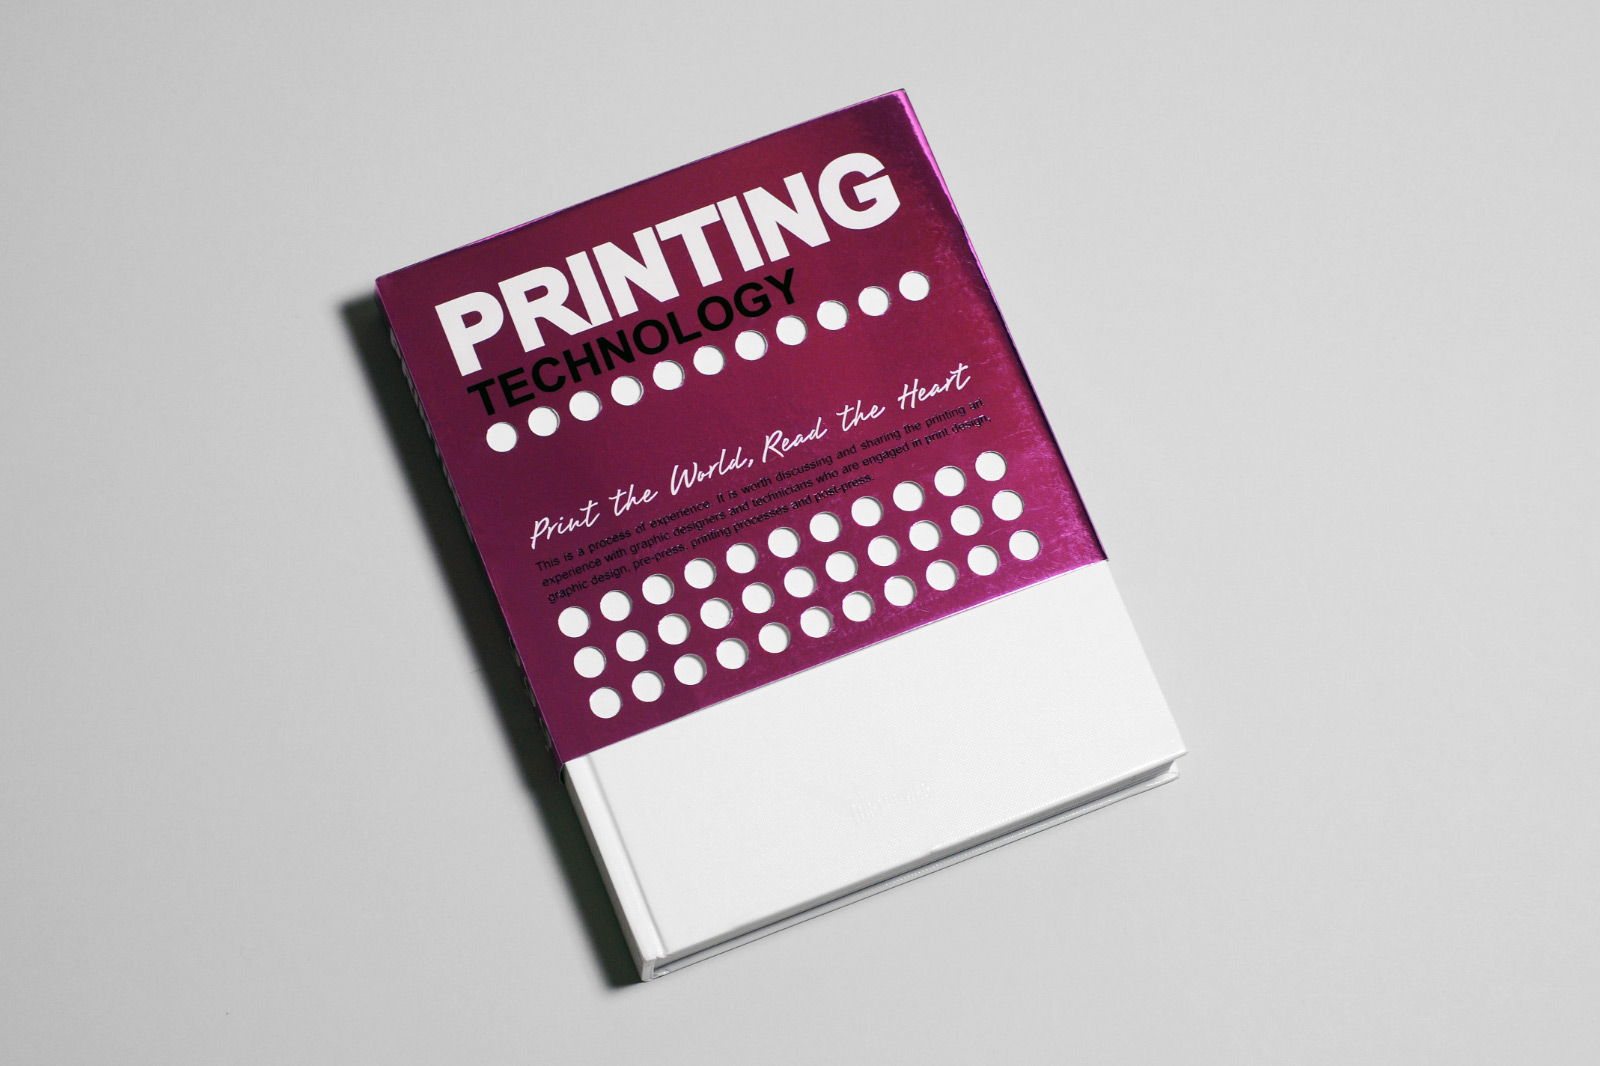 Printing Technology published by Artpower International Publishing Co. Limited